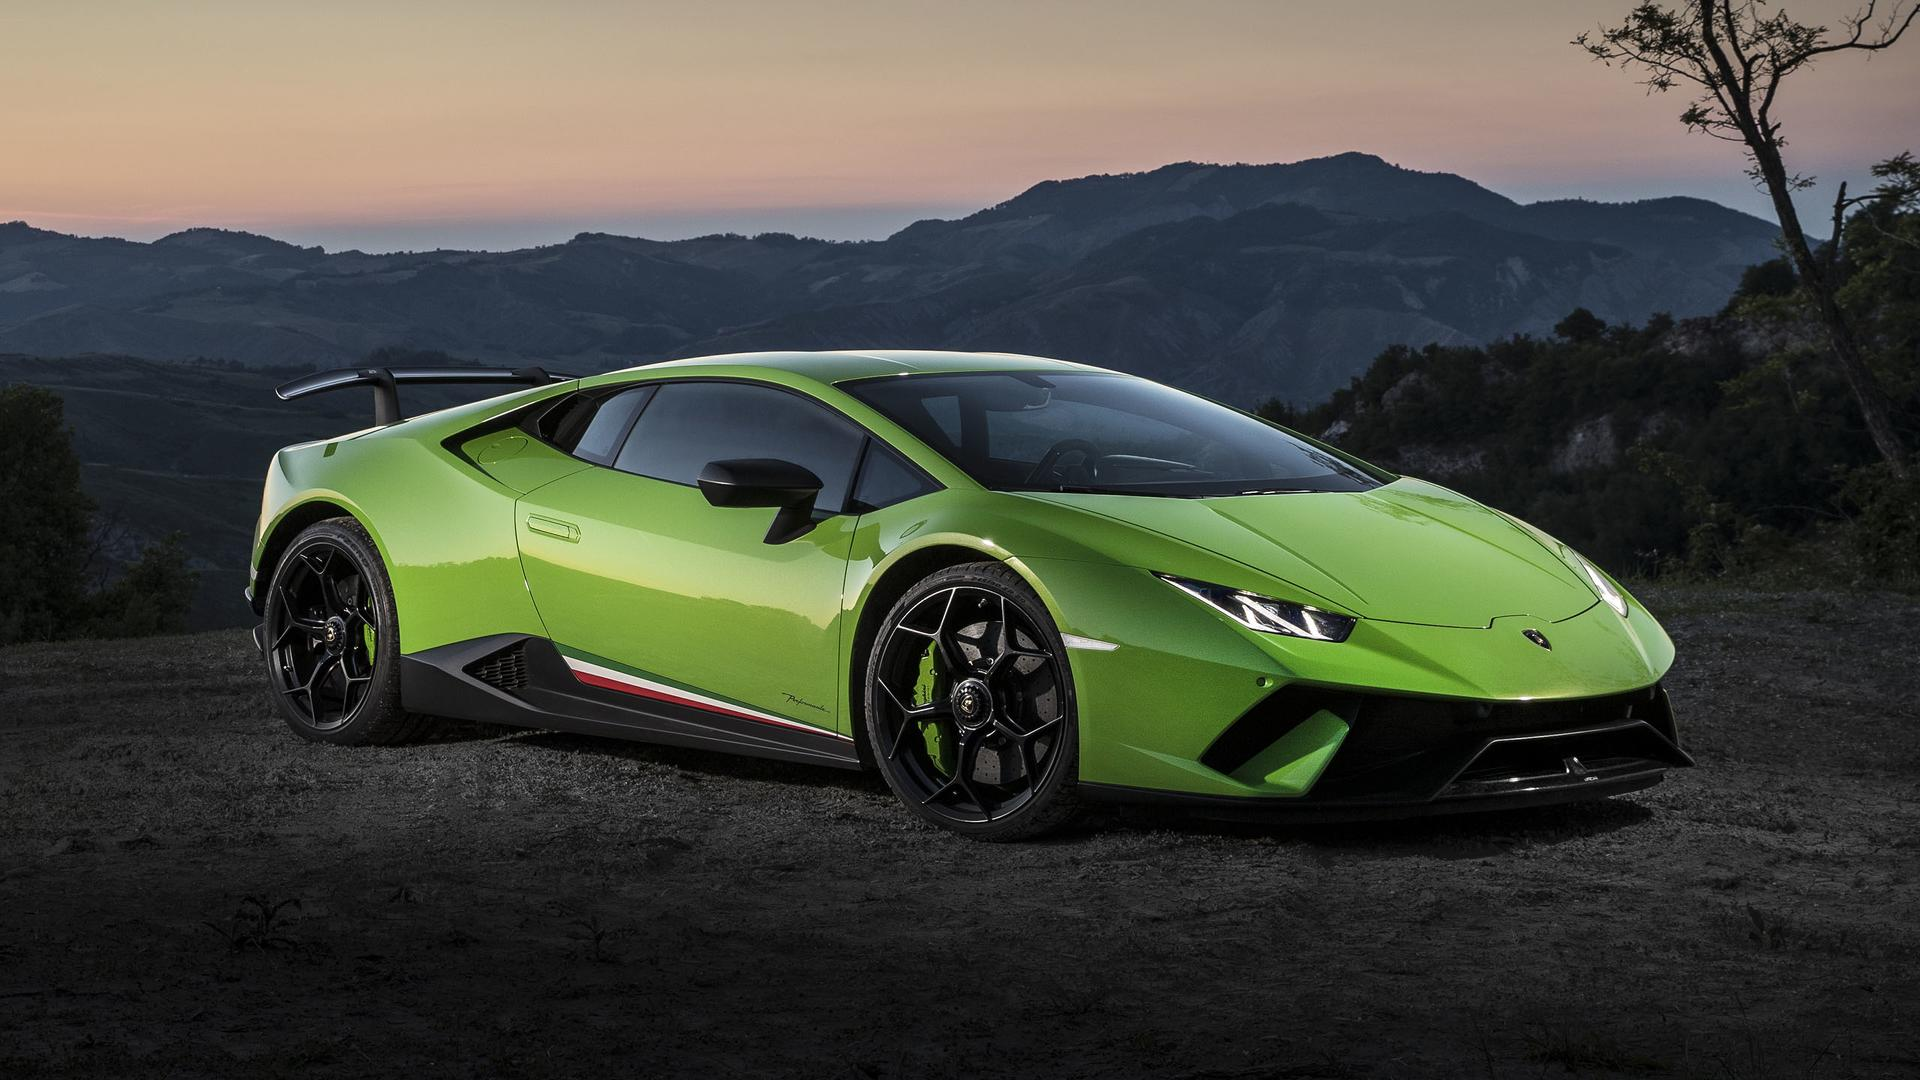 news carsguide lamborghini huracan spyder debut green price makes lime car australian